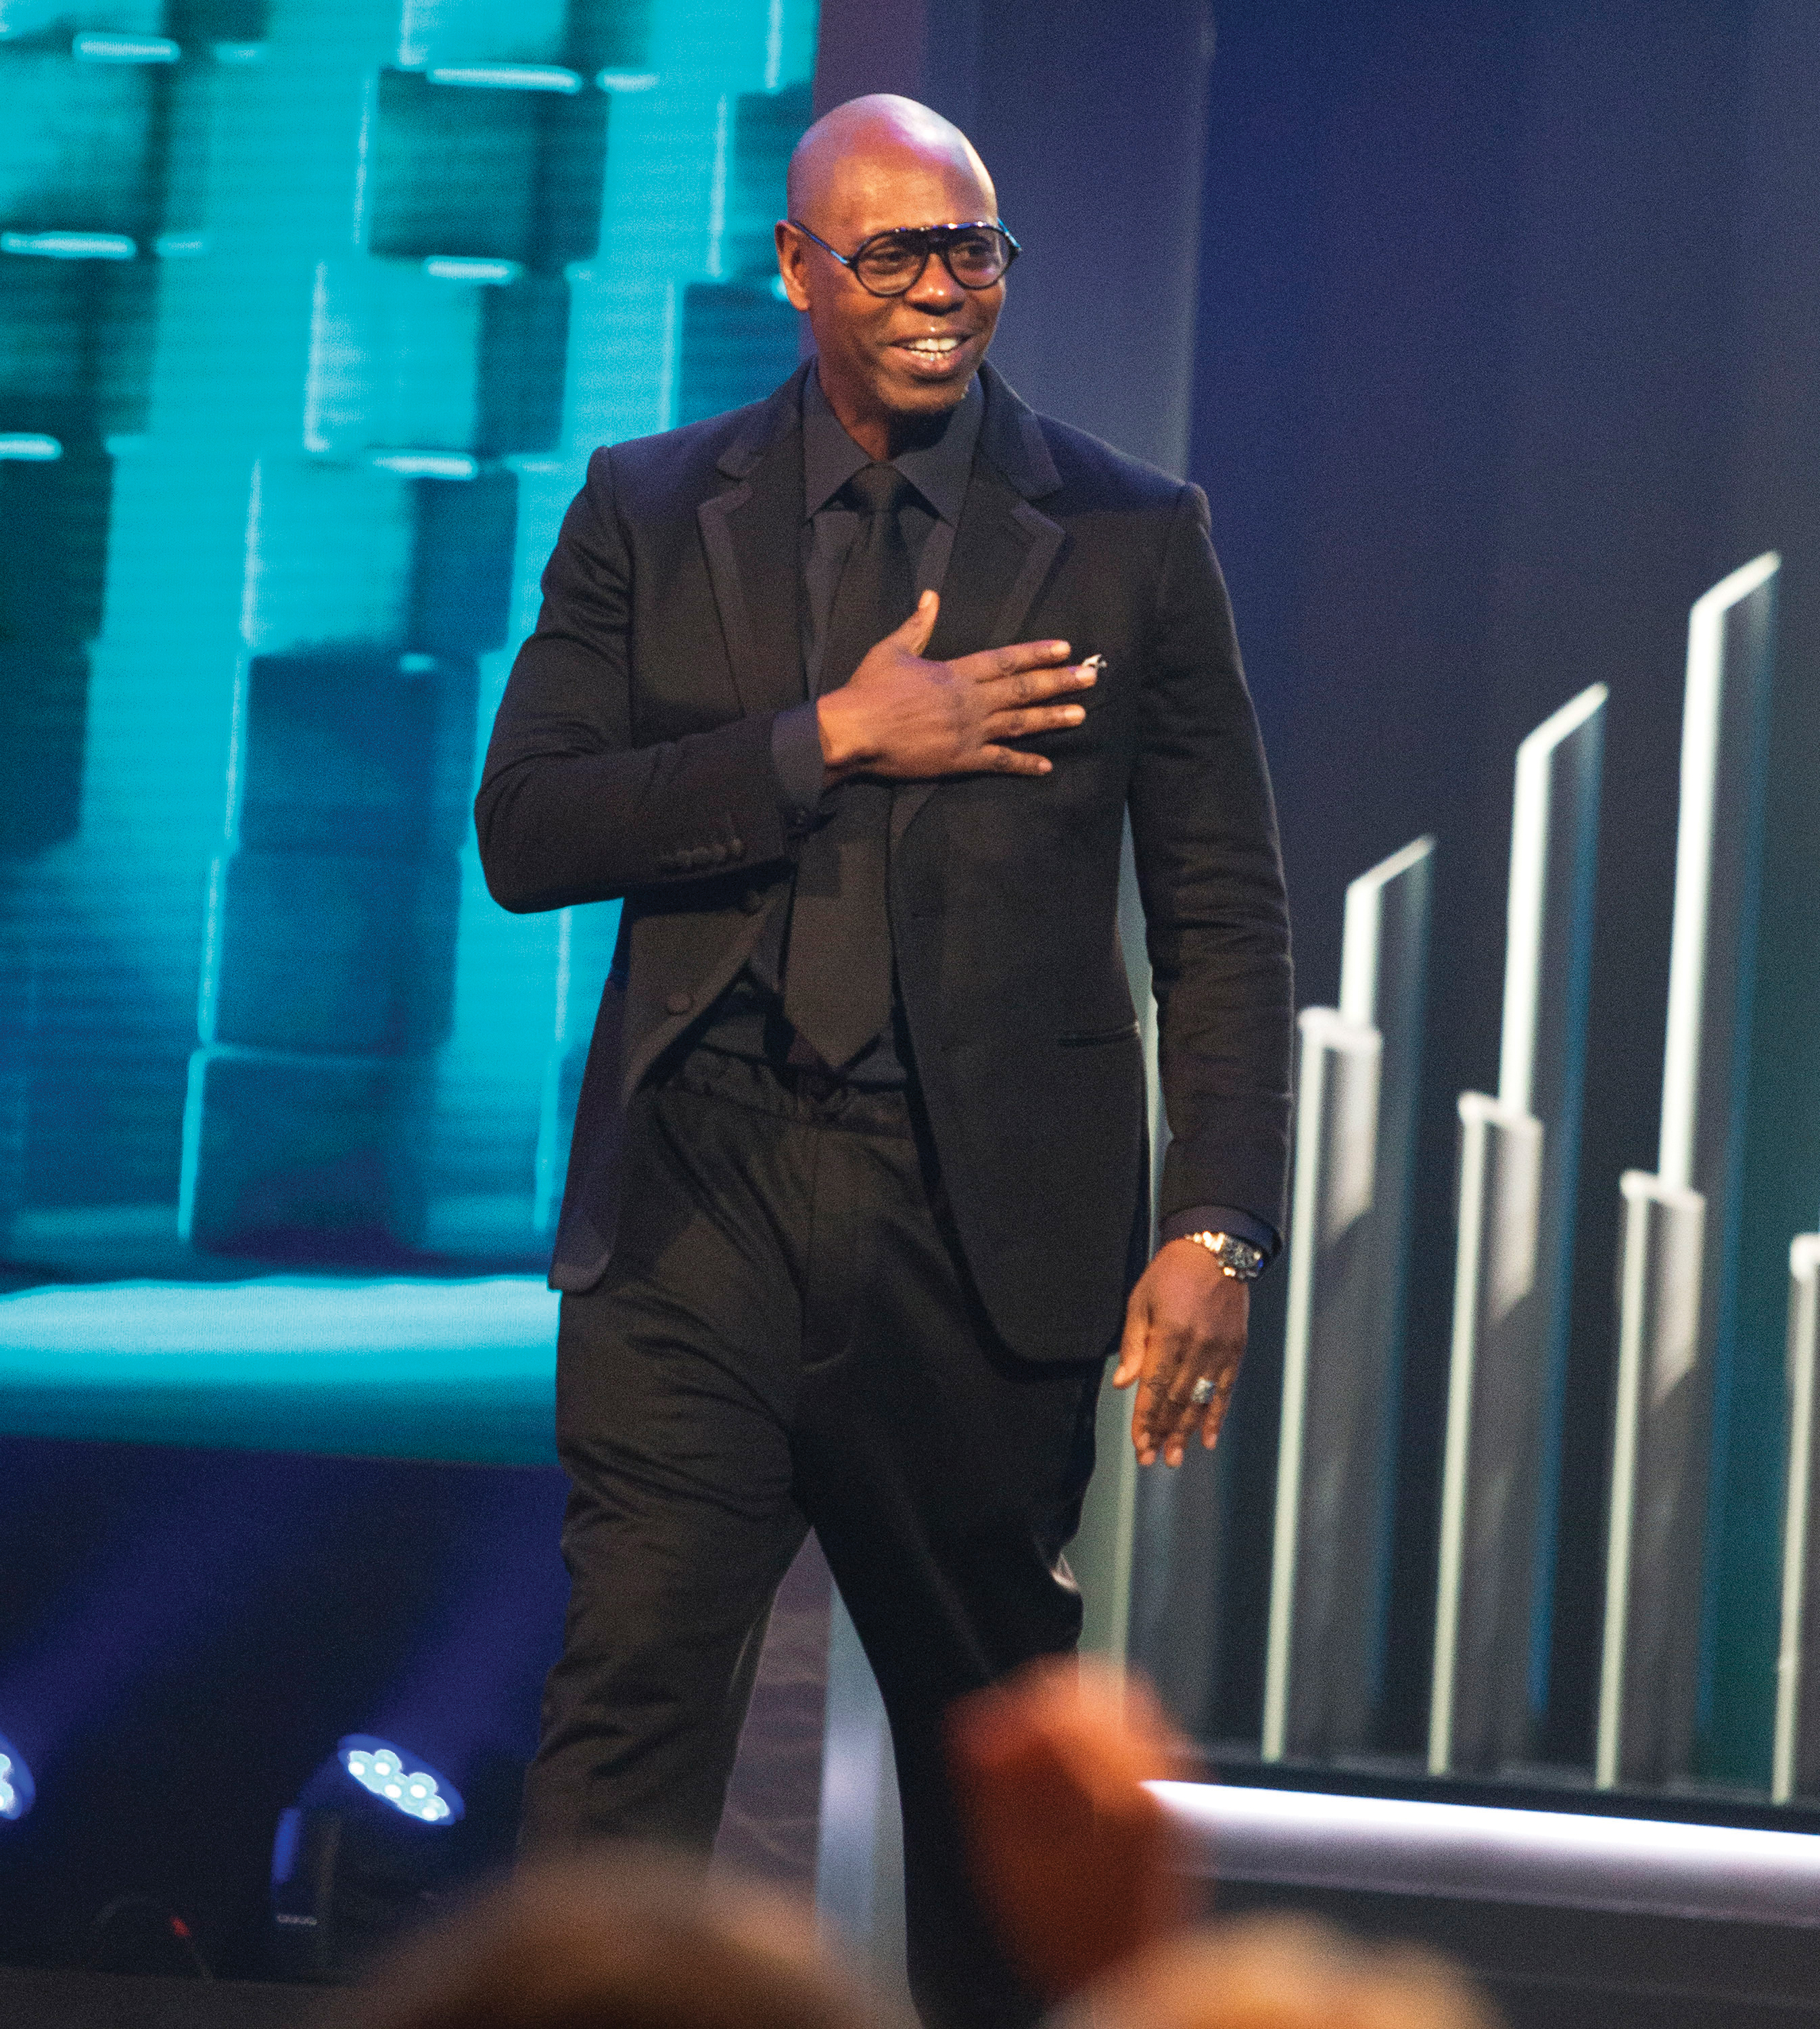 comedian dave chappelle honored with mark twain prize richmond free press serving the african american community in richmond va http richmondfreepress com news 2019 oct 31 comedian dave chappelle honored mark twain prize